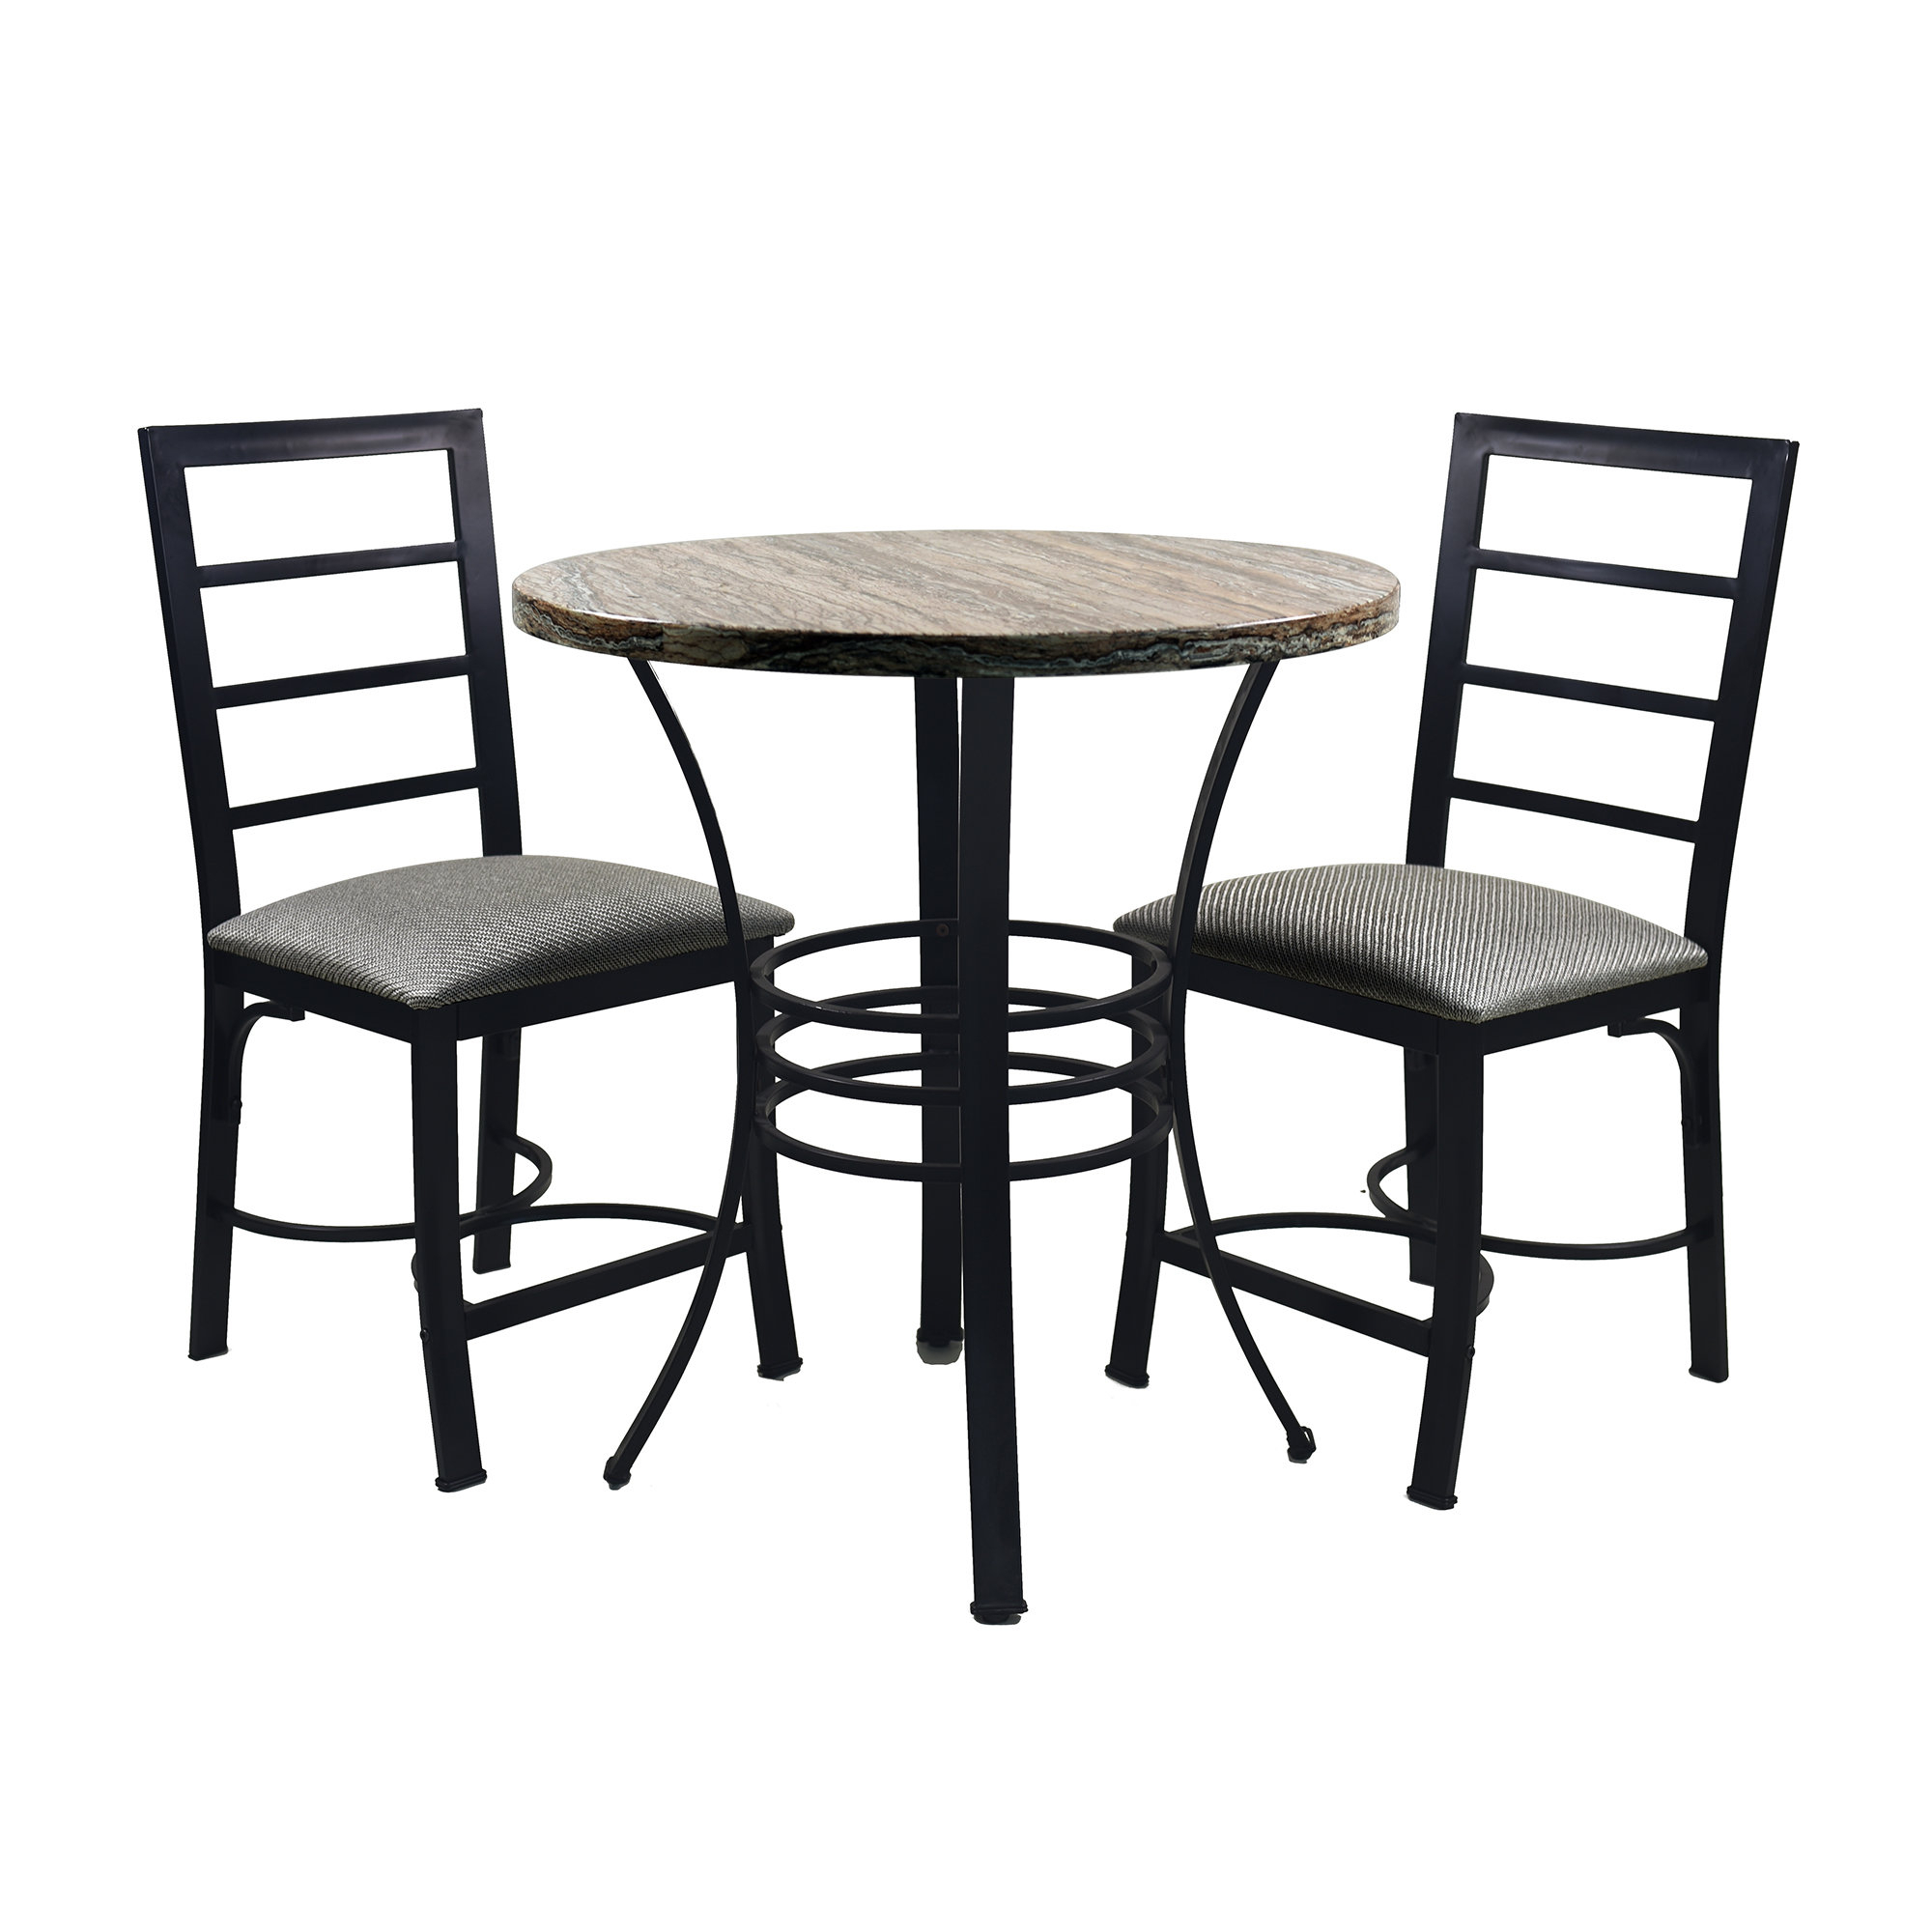 Askern 3 Piece Counter Height Dining Sets (Set Of 3) Regarding Newest Casillas Bistro 3 Piece Dining Set (View 8 of 20)